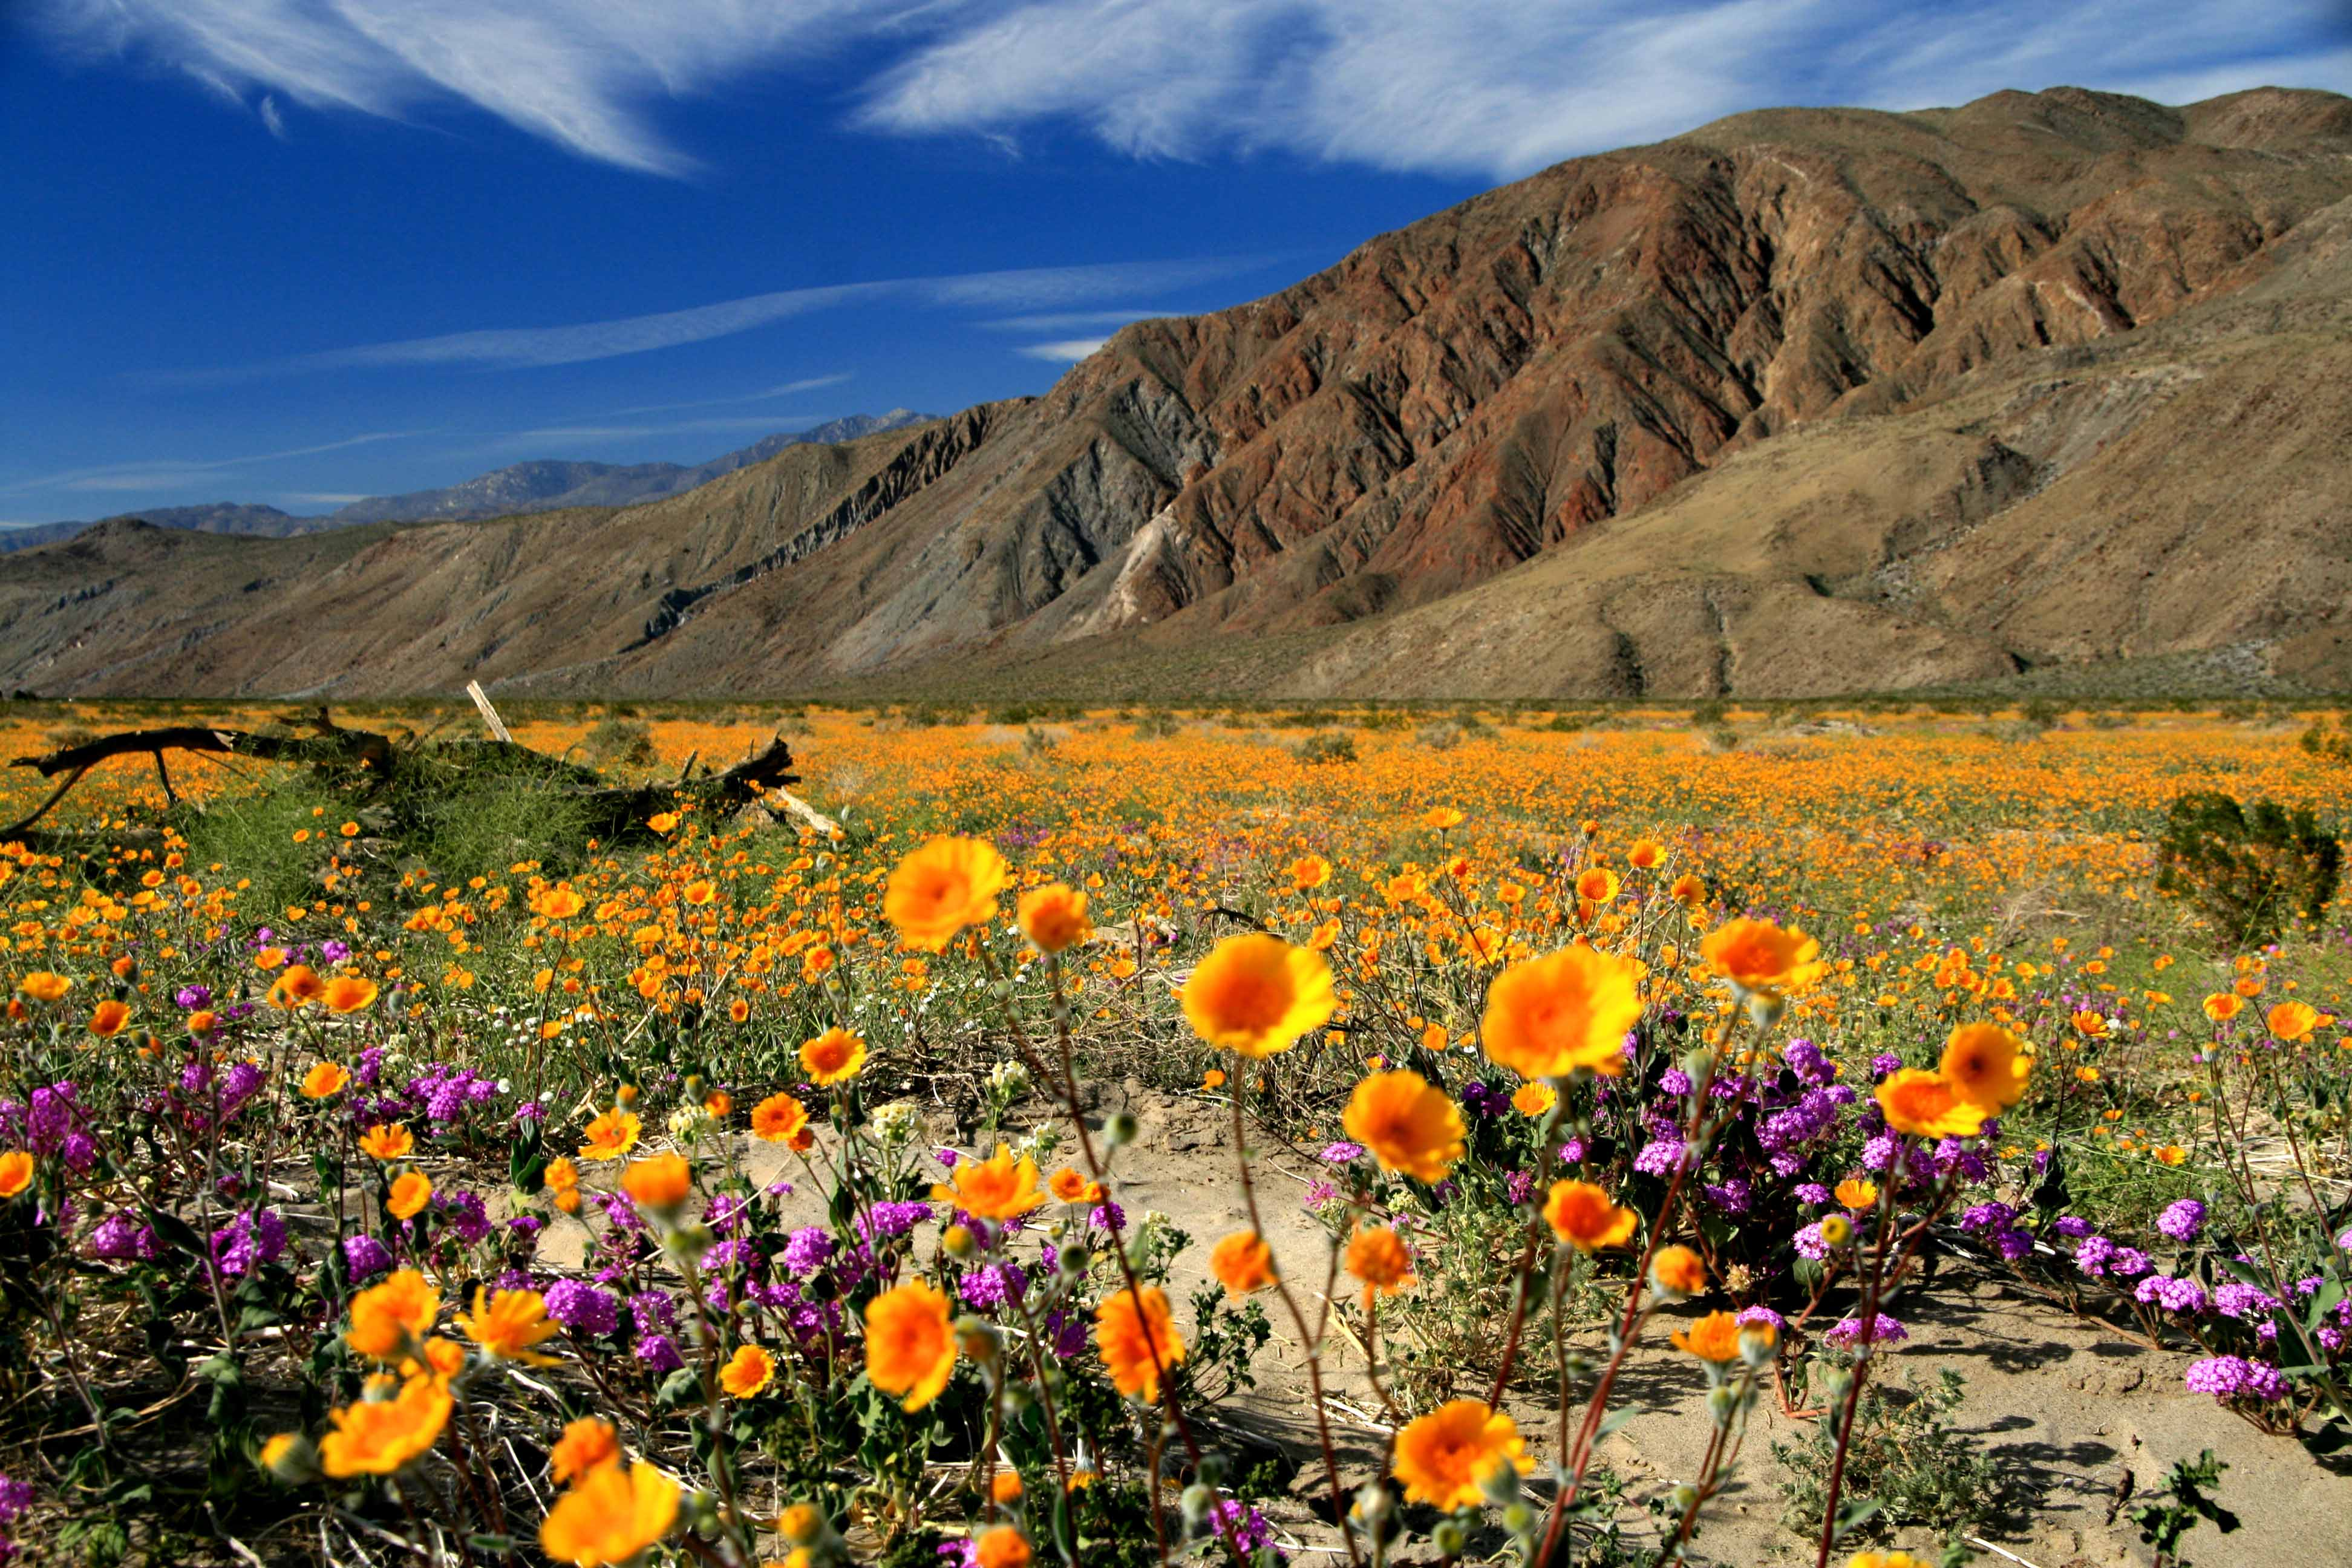 Wild about Wildflowers in San Diegos East County 3888x2592